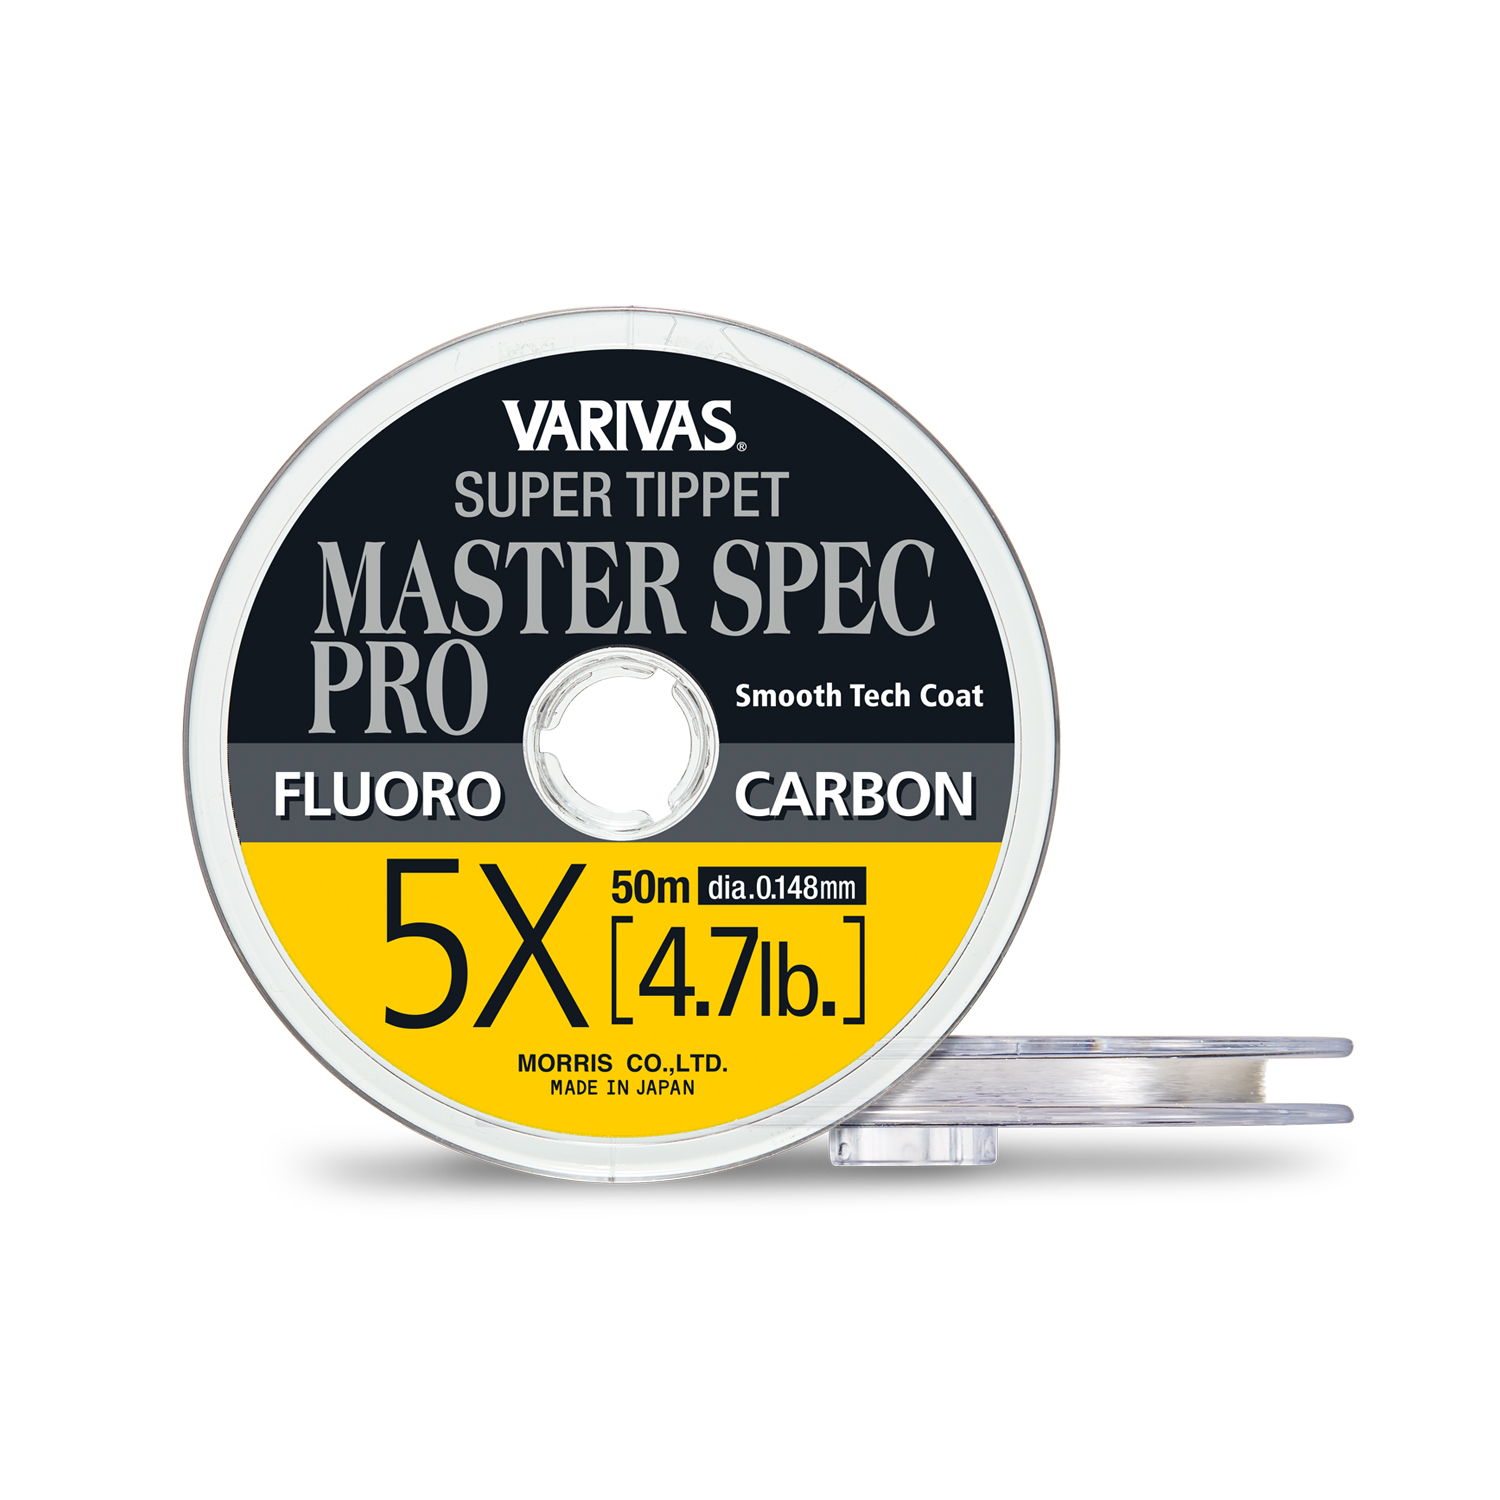 Super Tippet Master SpecPro [FLUORO CARBON]